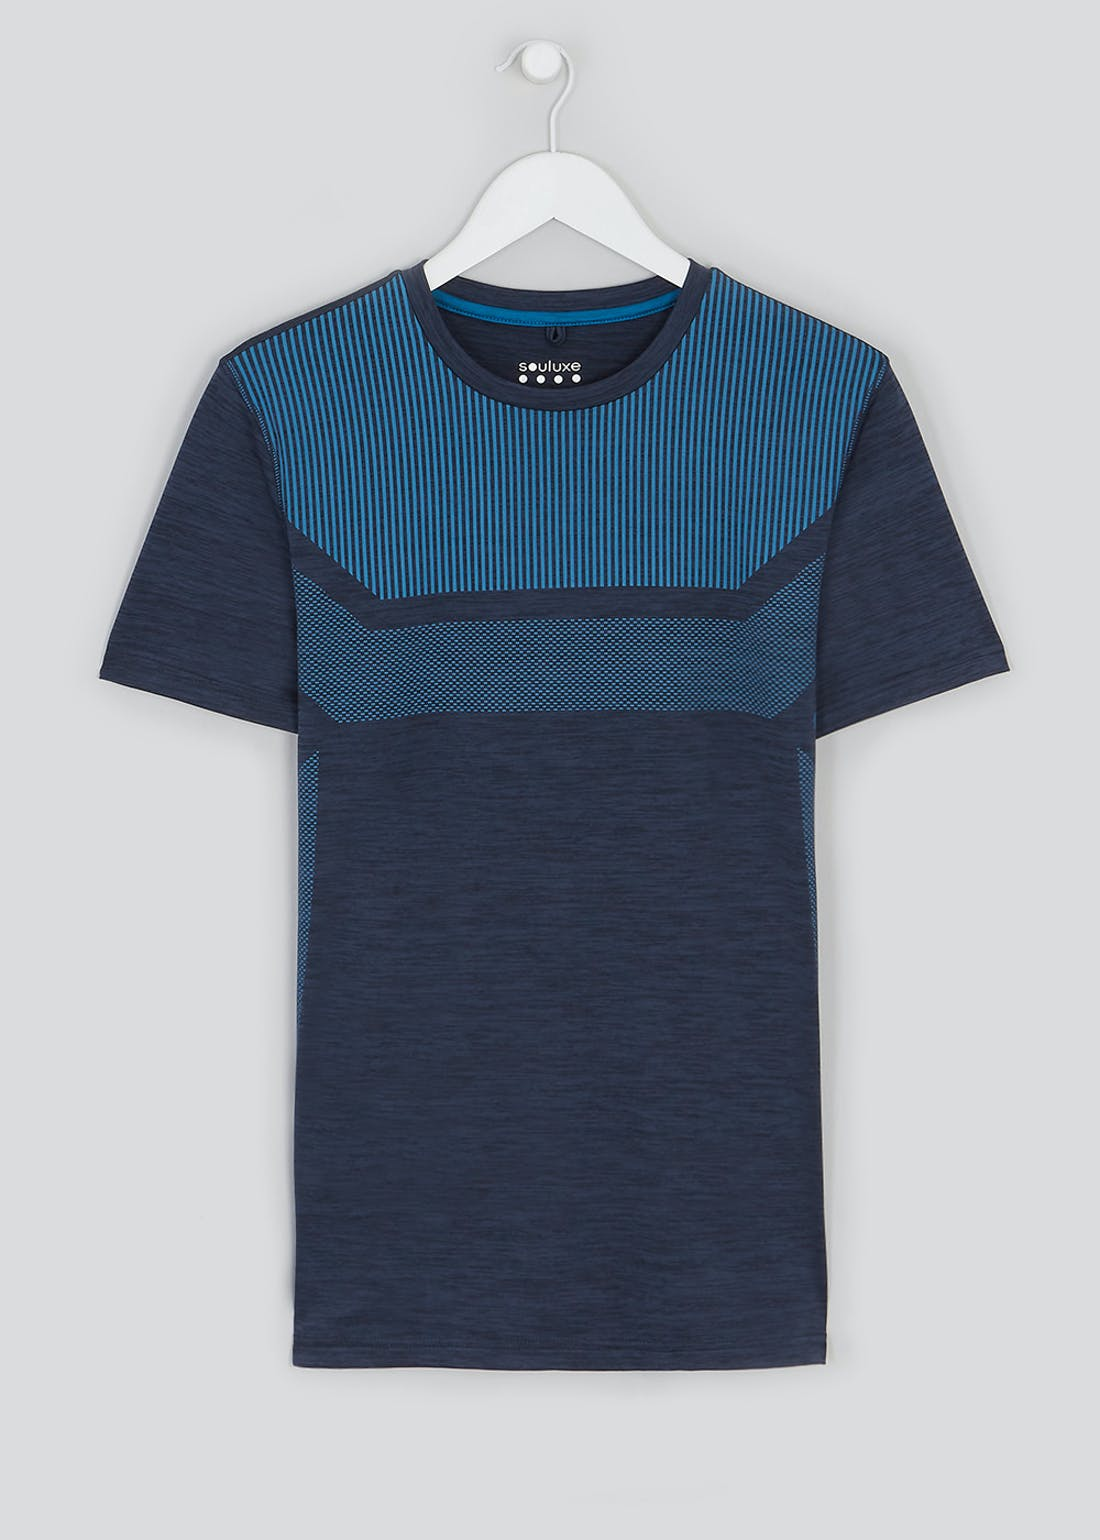 Souluxe Navy Stripe Panel Gym Top